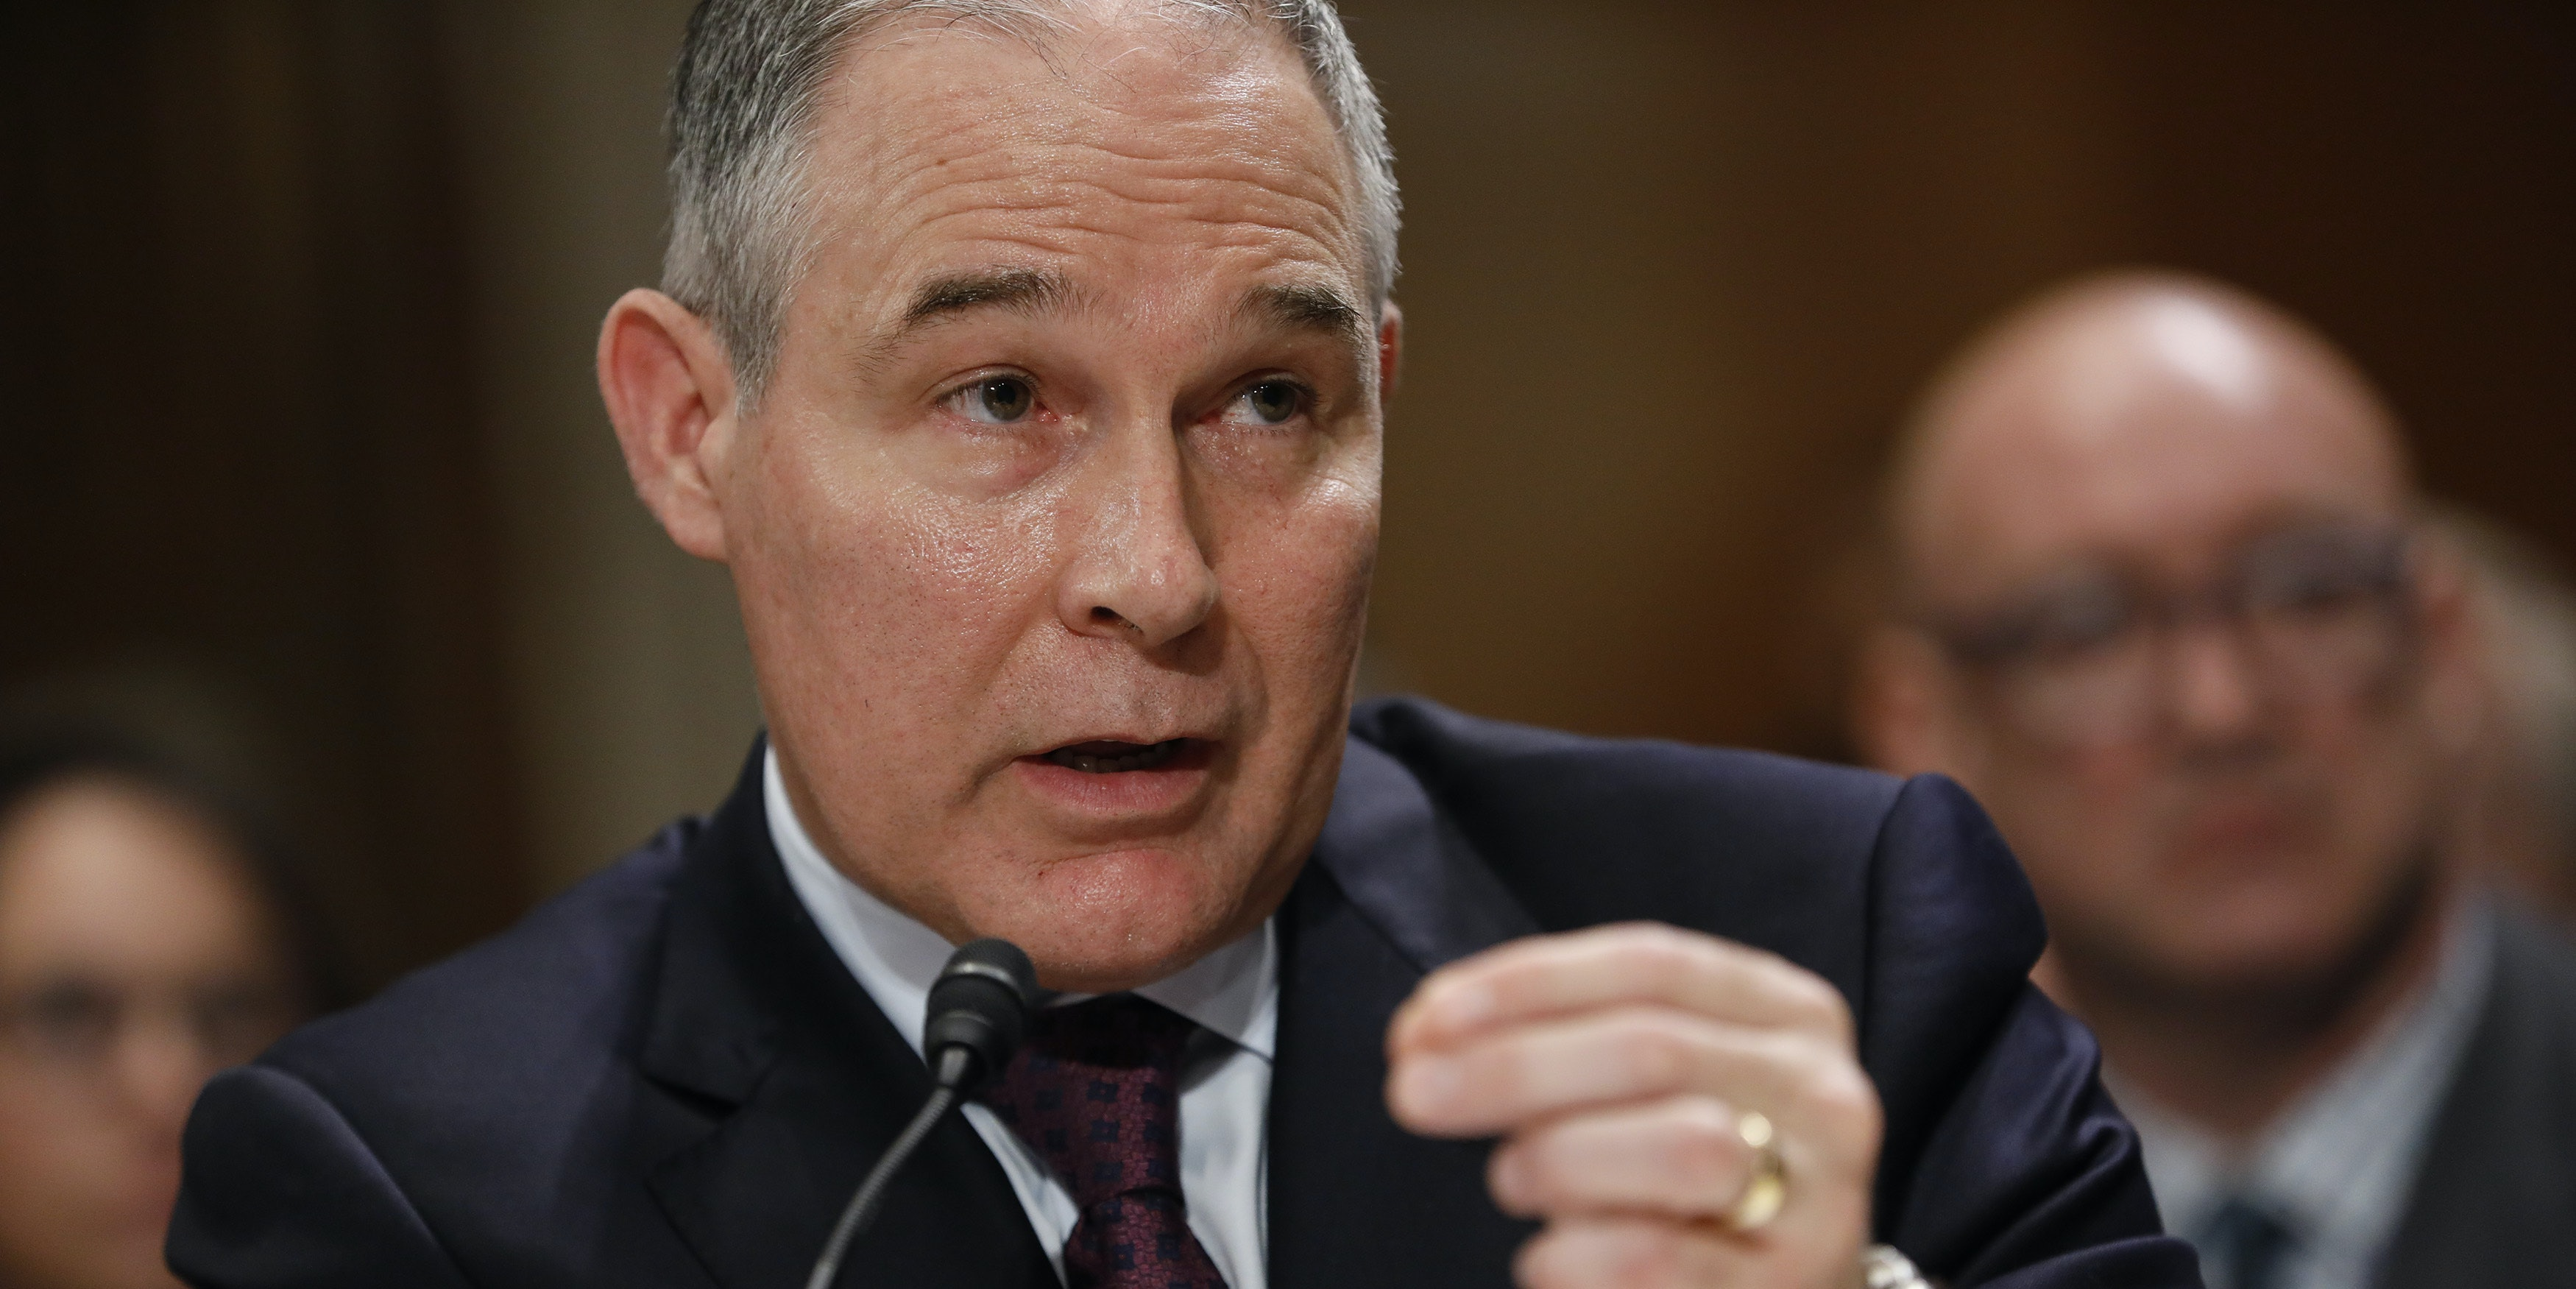 WASHINGTON, DC - JANUARY 18: Oklahoma Attorney General Scott Pruitt, President-elect Donald Trump's choice to head the Environmental Protection Agency, testifies during his confirmation hearing before the Senate Committee on Environment and Public Works on Capitol Hill January 18, 2017 in Washington, DC. Pruitt is expected to face tough questioning about his stance on climate change and ties to the oil and gas industry.   (Photo by Aaron P. Bernstein/Getty Images)